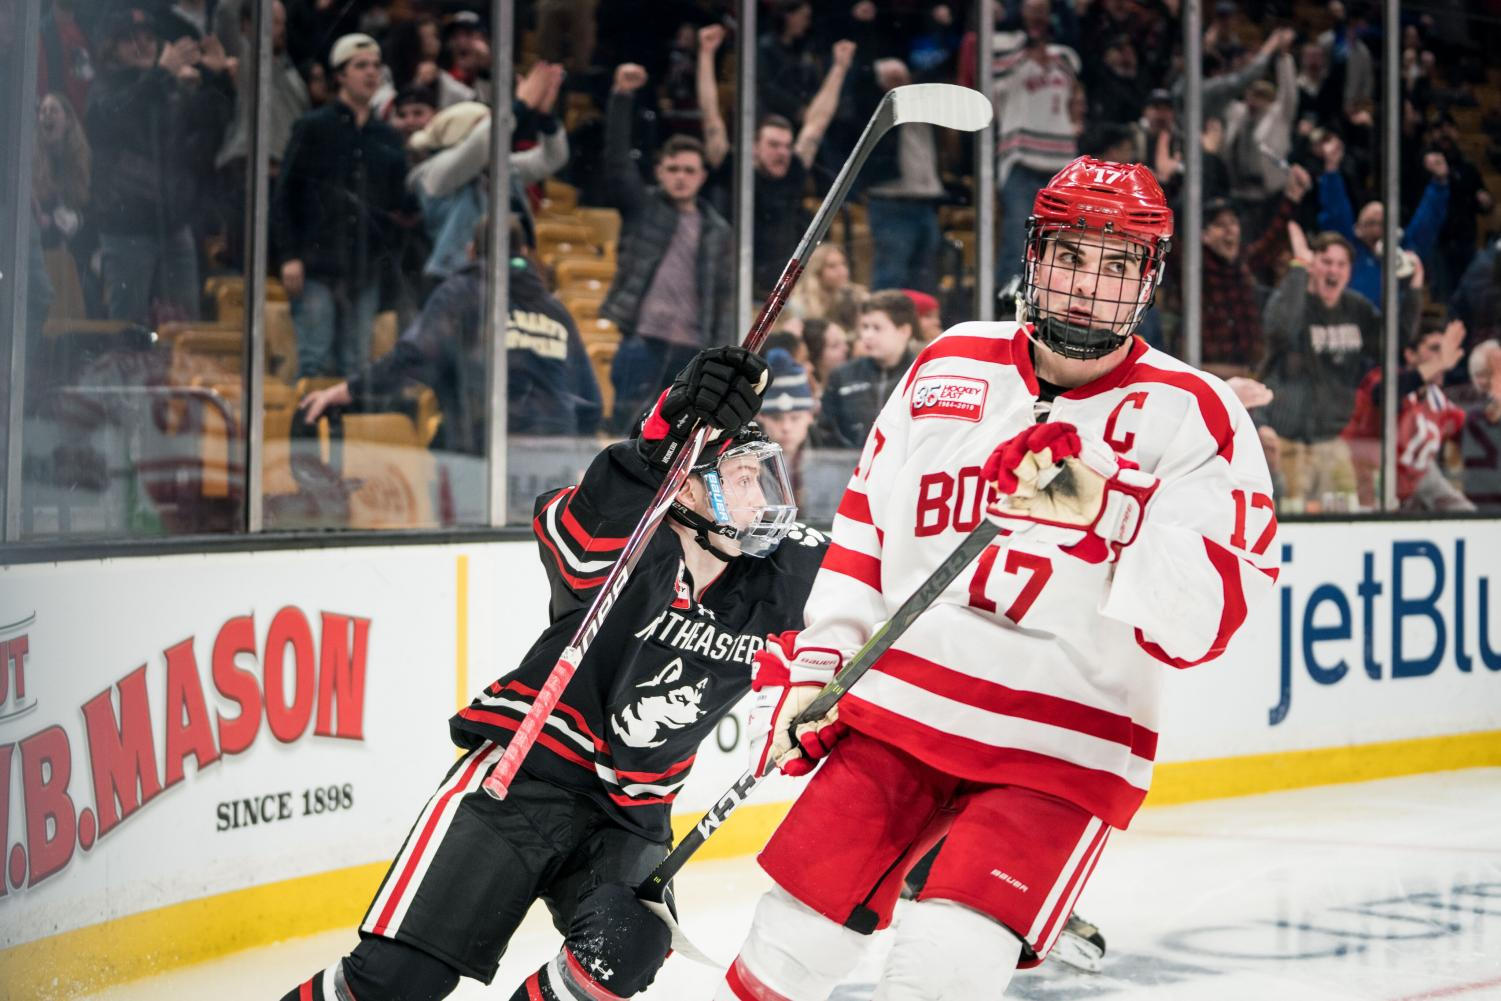 Freshman forward Tyler Madden celebrates his winning goal against Boston University in the first round of the Beanpot. The Huskies face Boston College in the final Monday night.